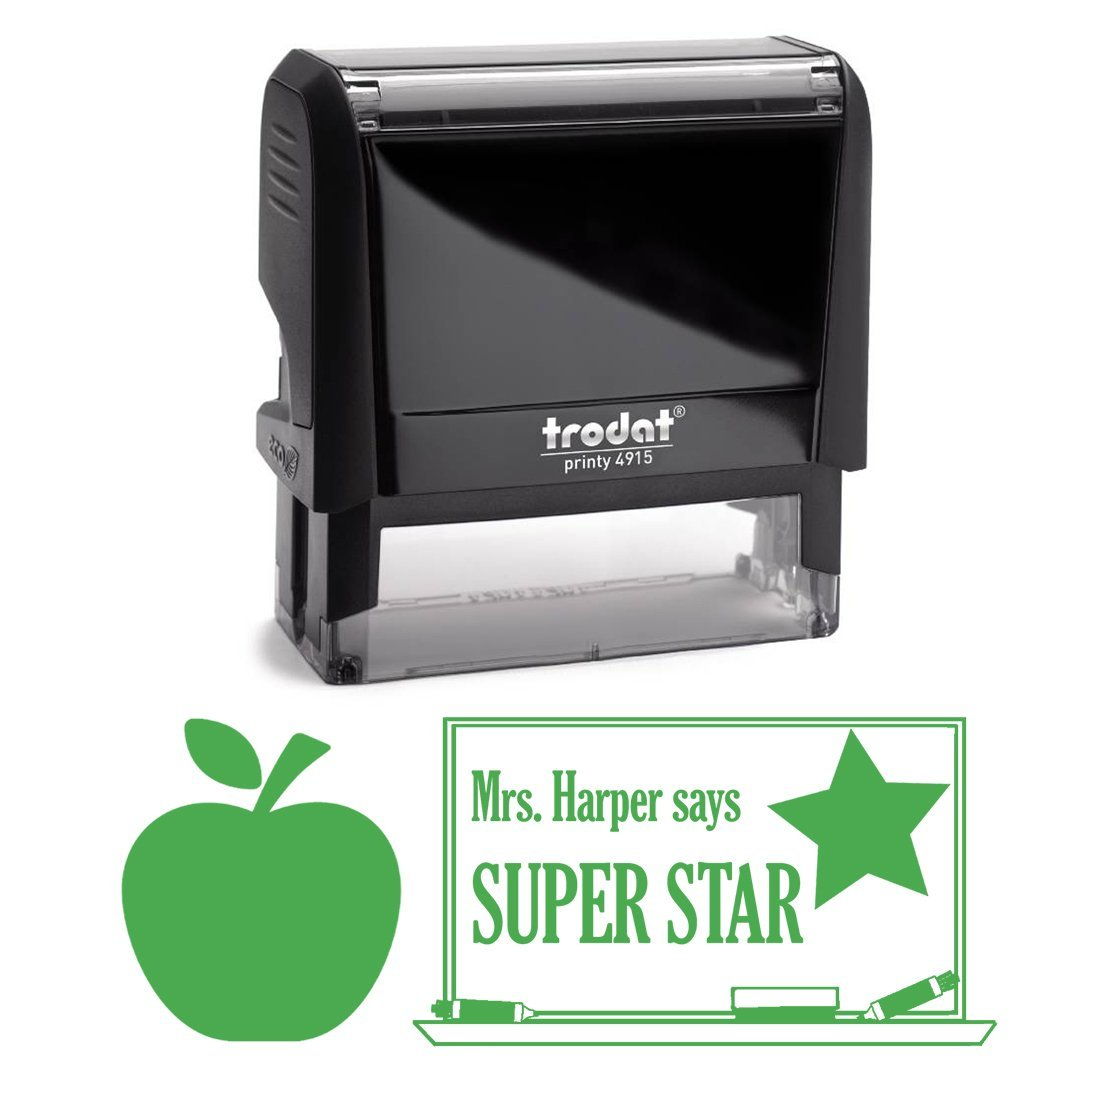 Green Ink, Super Star Apple Teacher Stamp, Self Inking, Homework Personalized School Work Stamp, Large 2 Lines, Customized Unique Gift, Personal Classroom Stamper